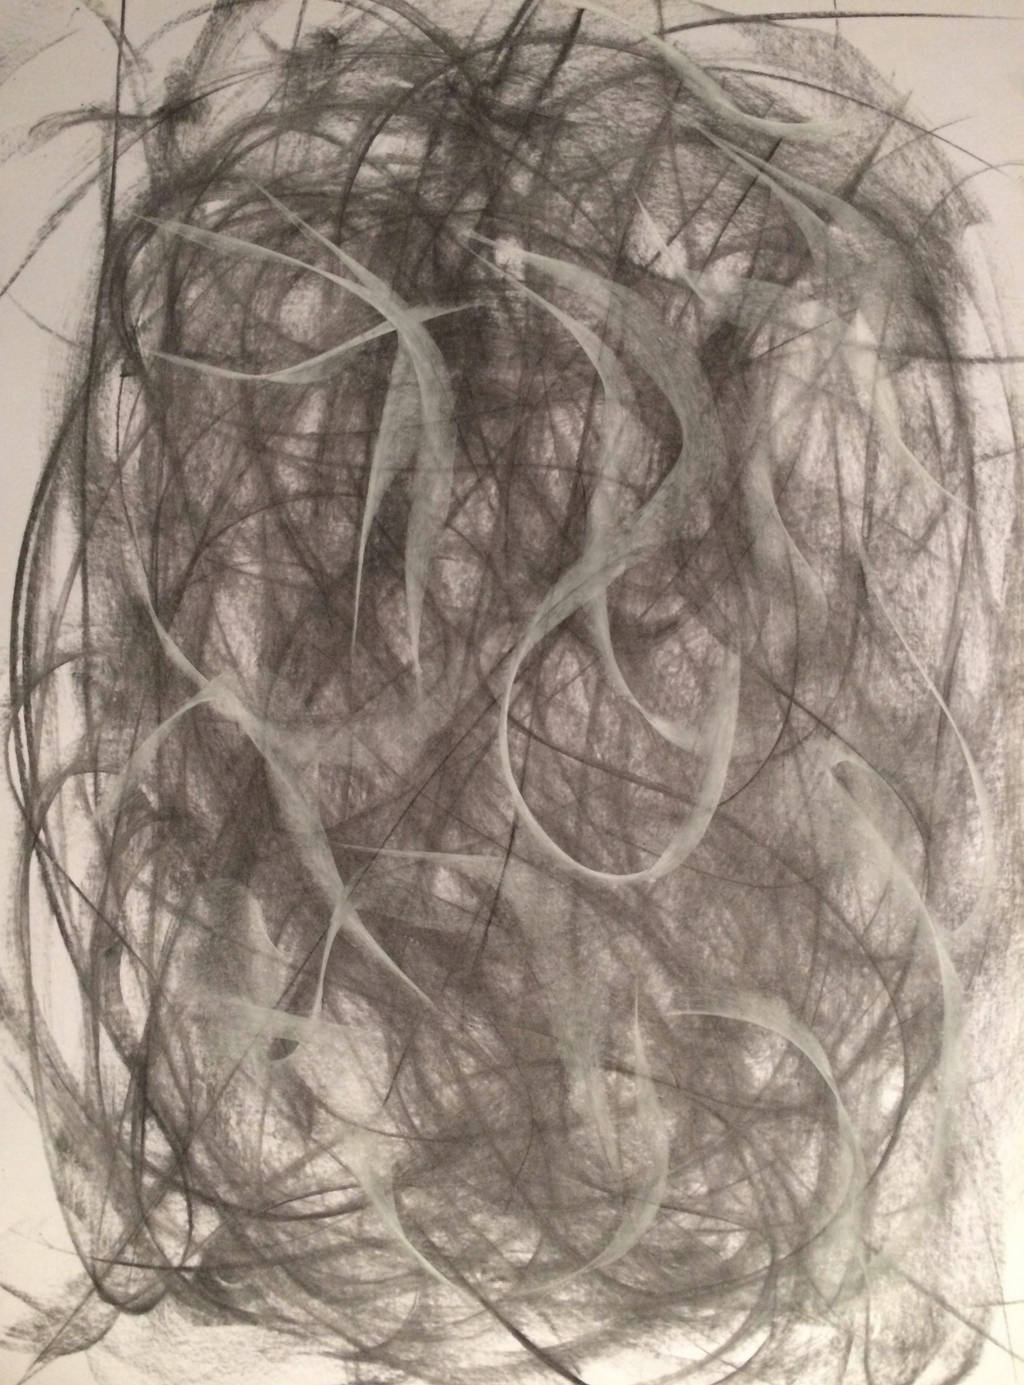 CHARCOAL AND PASTEL ABSTRACT 3 by WeirdDarkness